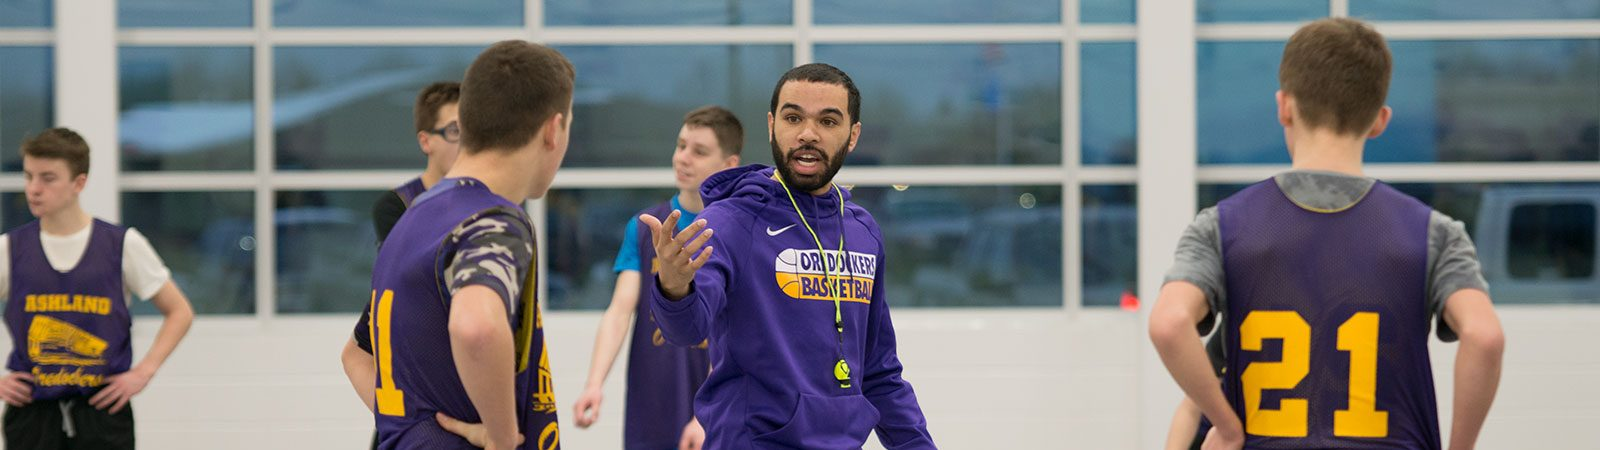 Northland College student Danon Briggs coaching kids on the basketball court.